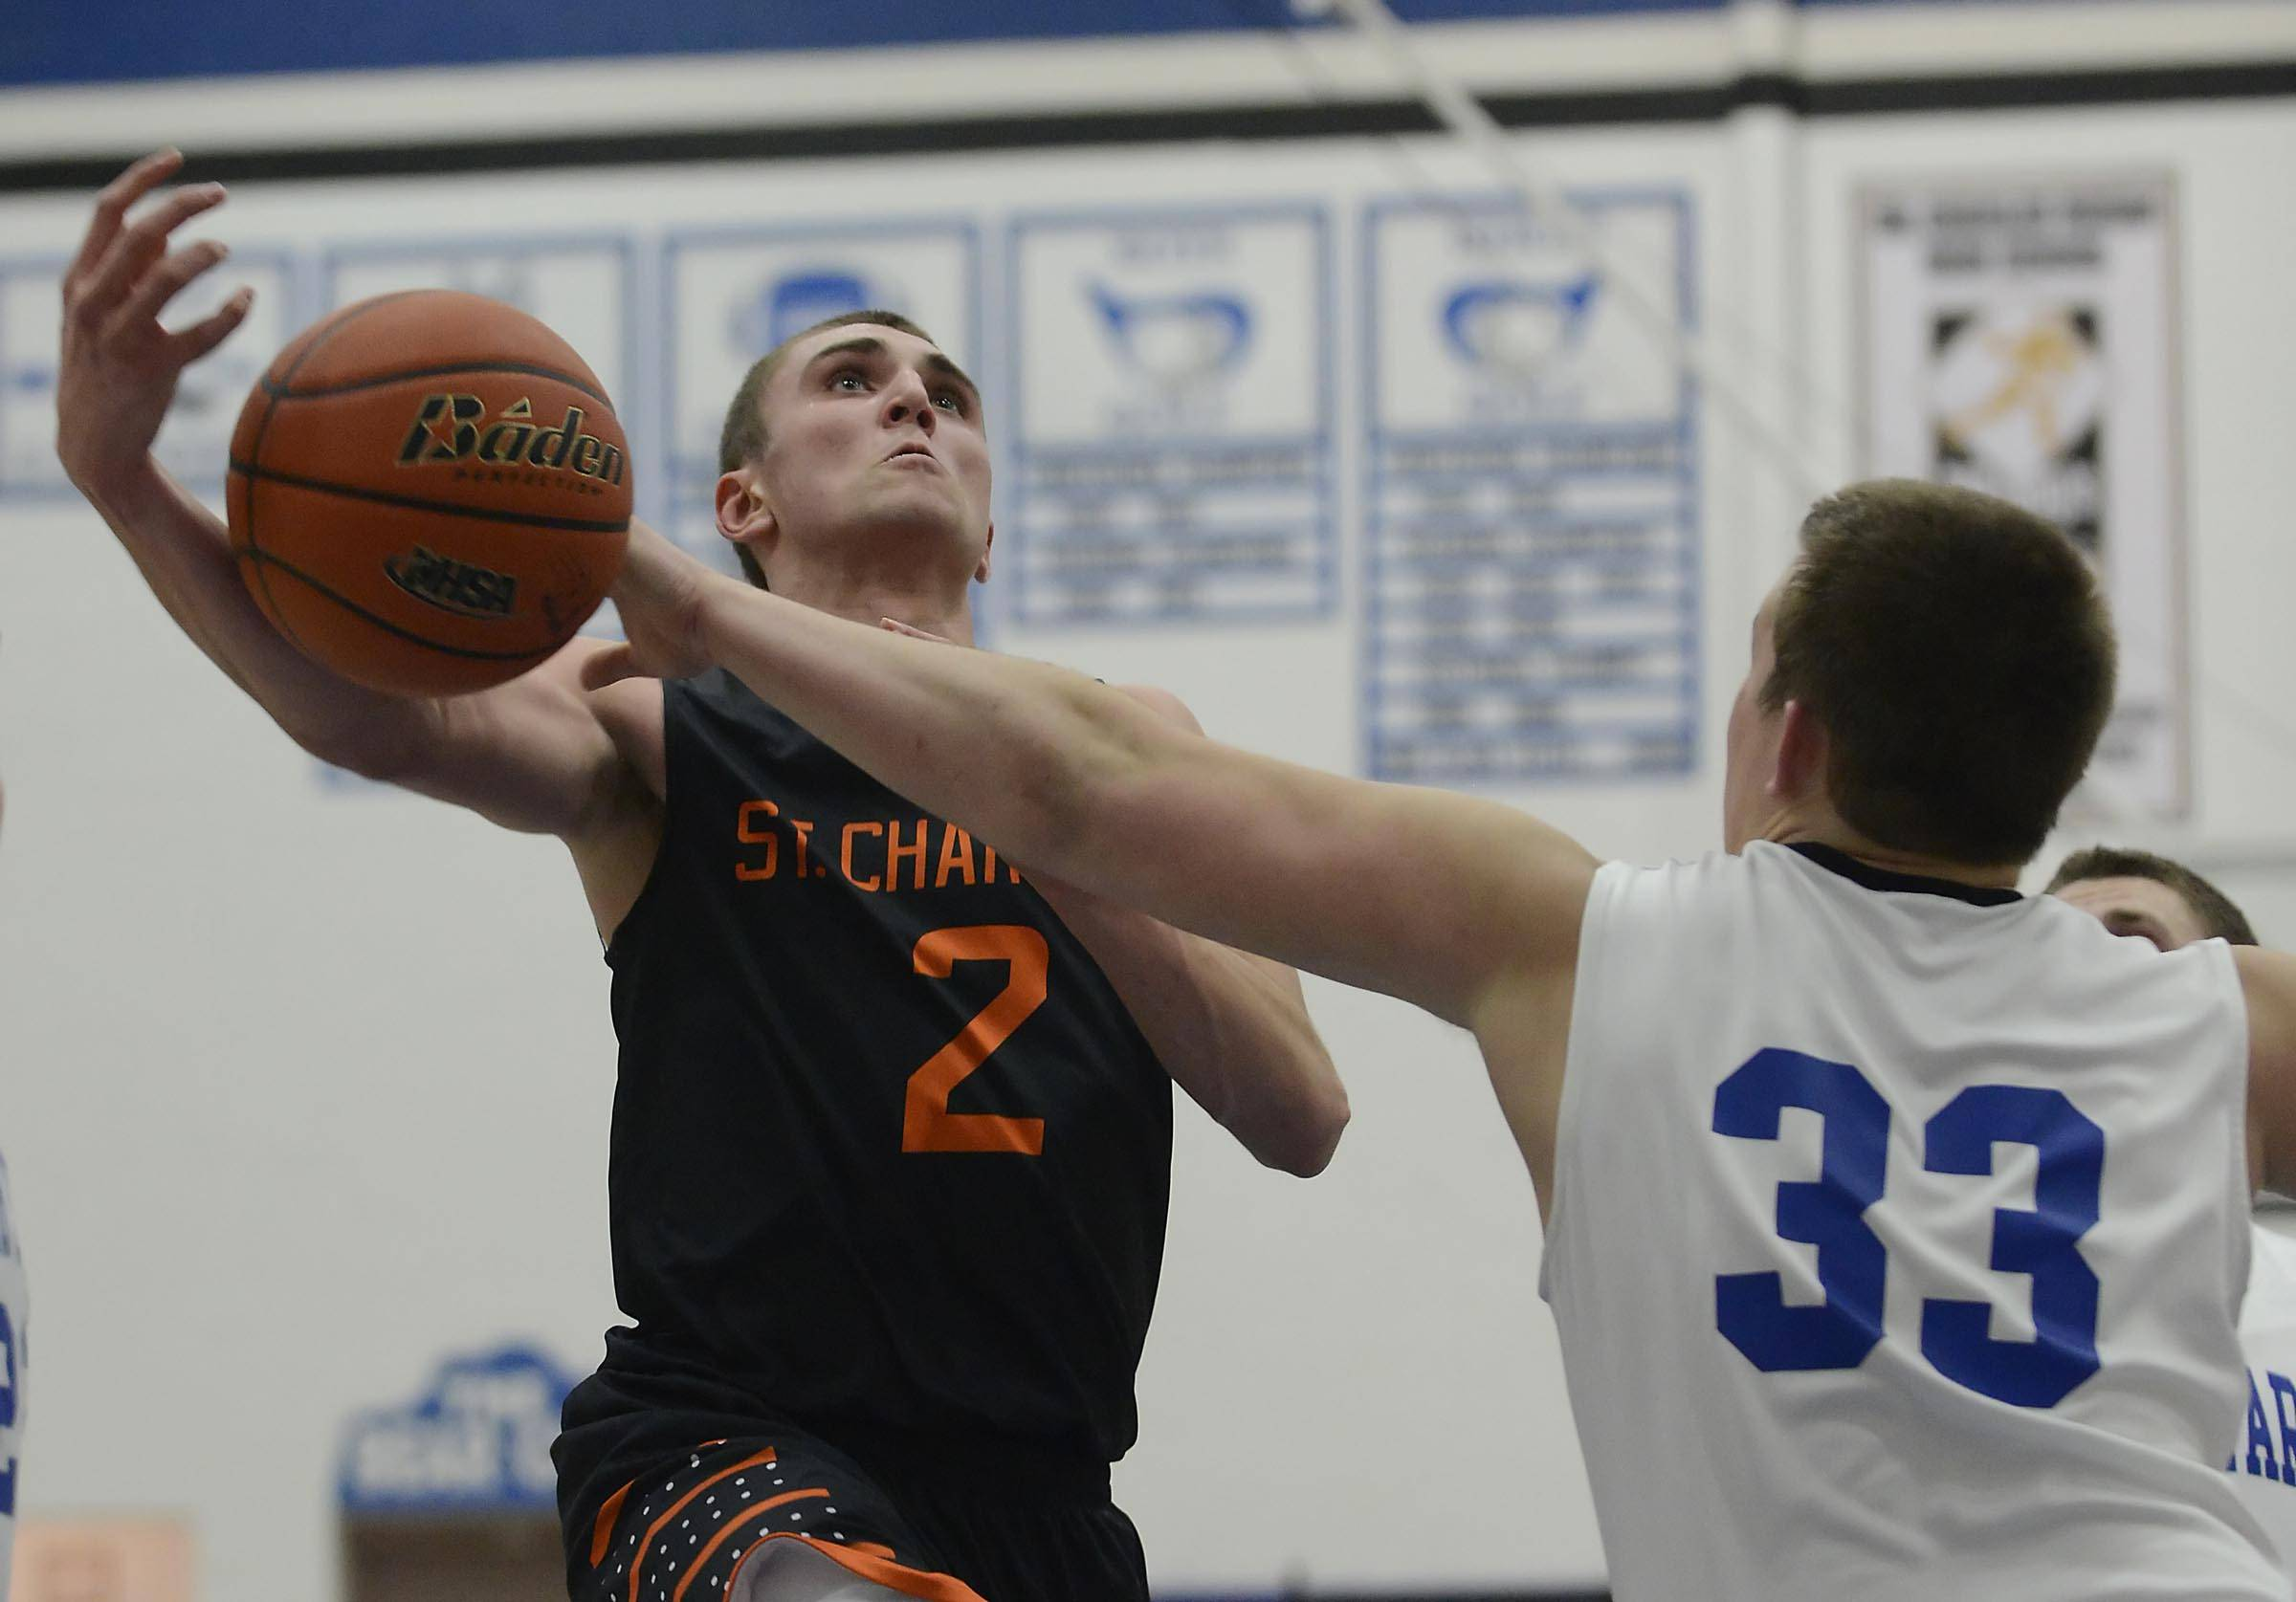 St. Charles North's Camden Cotter knocks the ball from St. Charles East's Dom Adduci Wednesday in the regional game at St. Charles North.